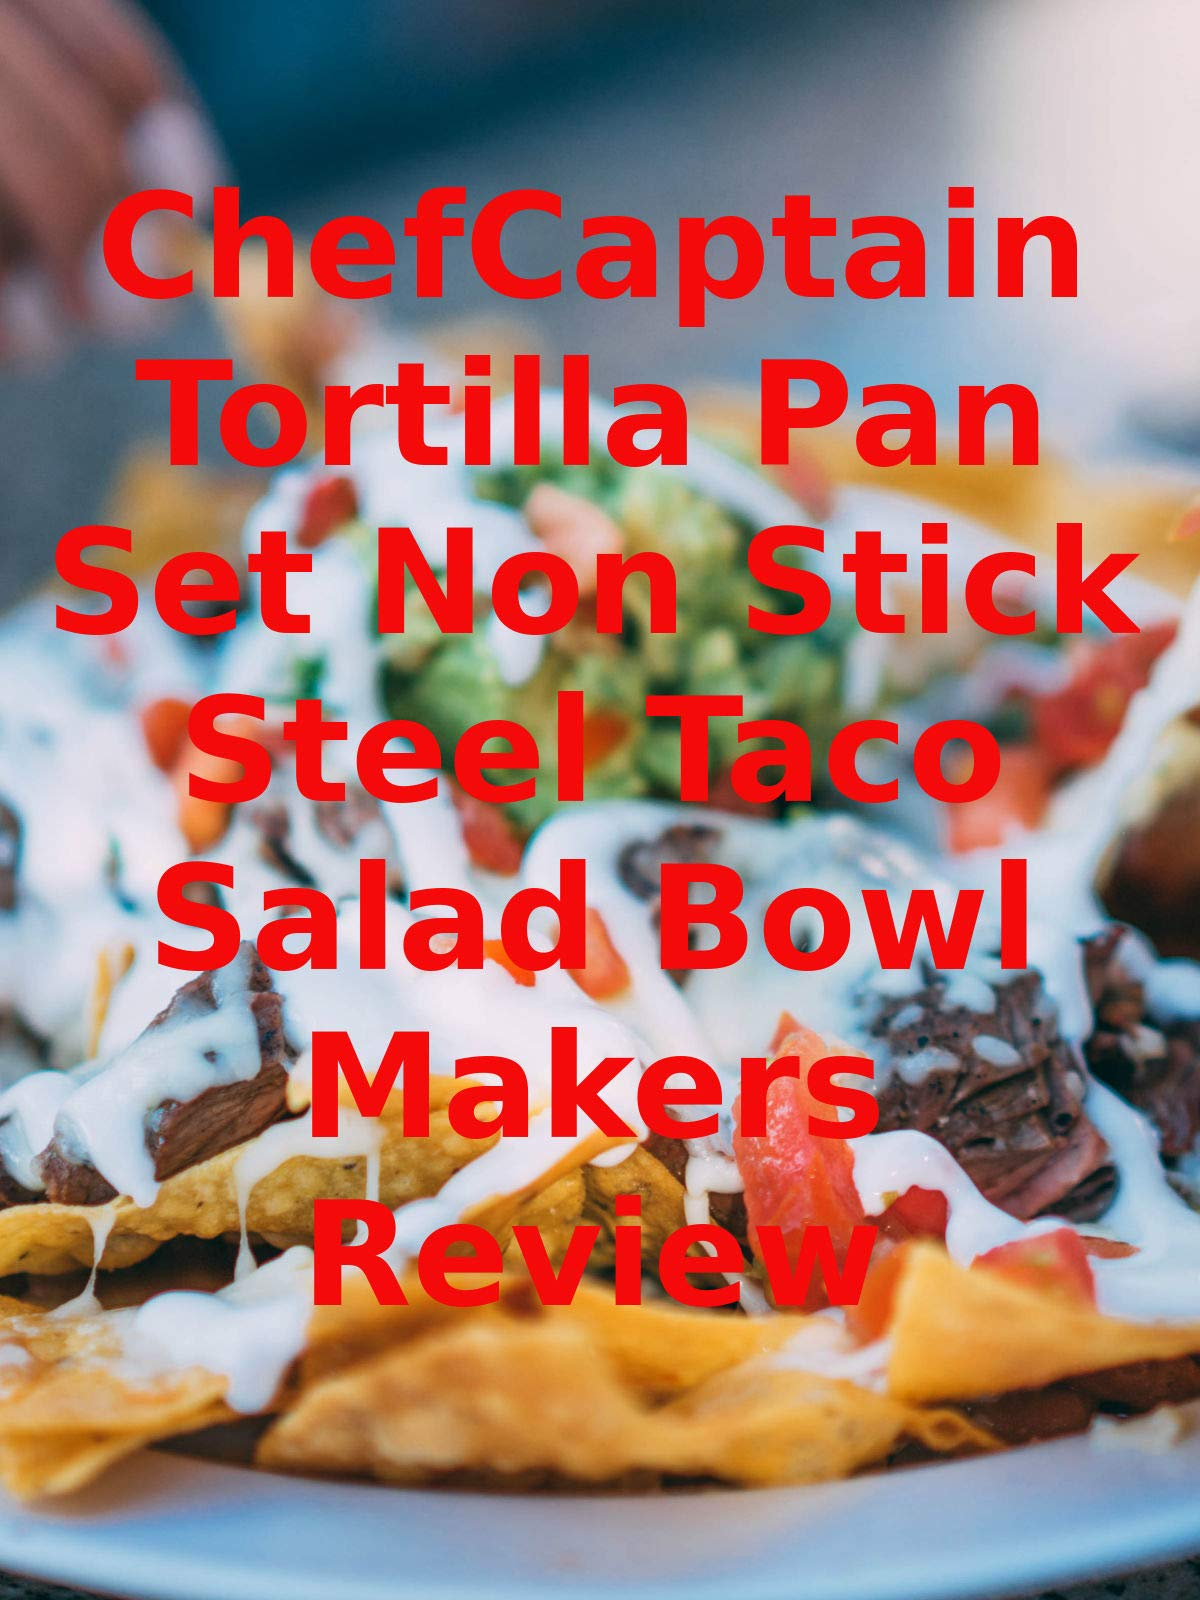 Review: ChefCaptain Tortilla Pan Set Non Stick Steel Taco Salad Bowl Makers Review on Amazon Prime Video UK